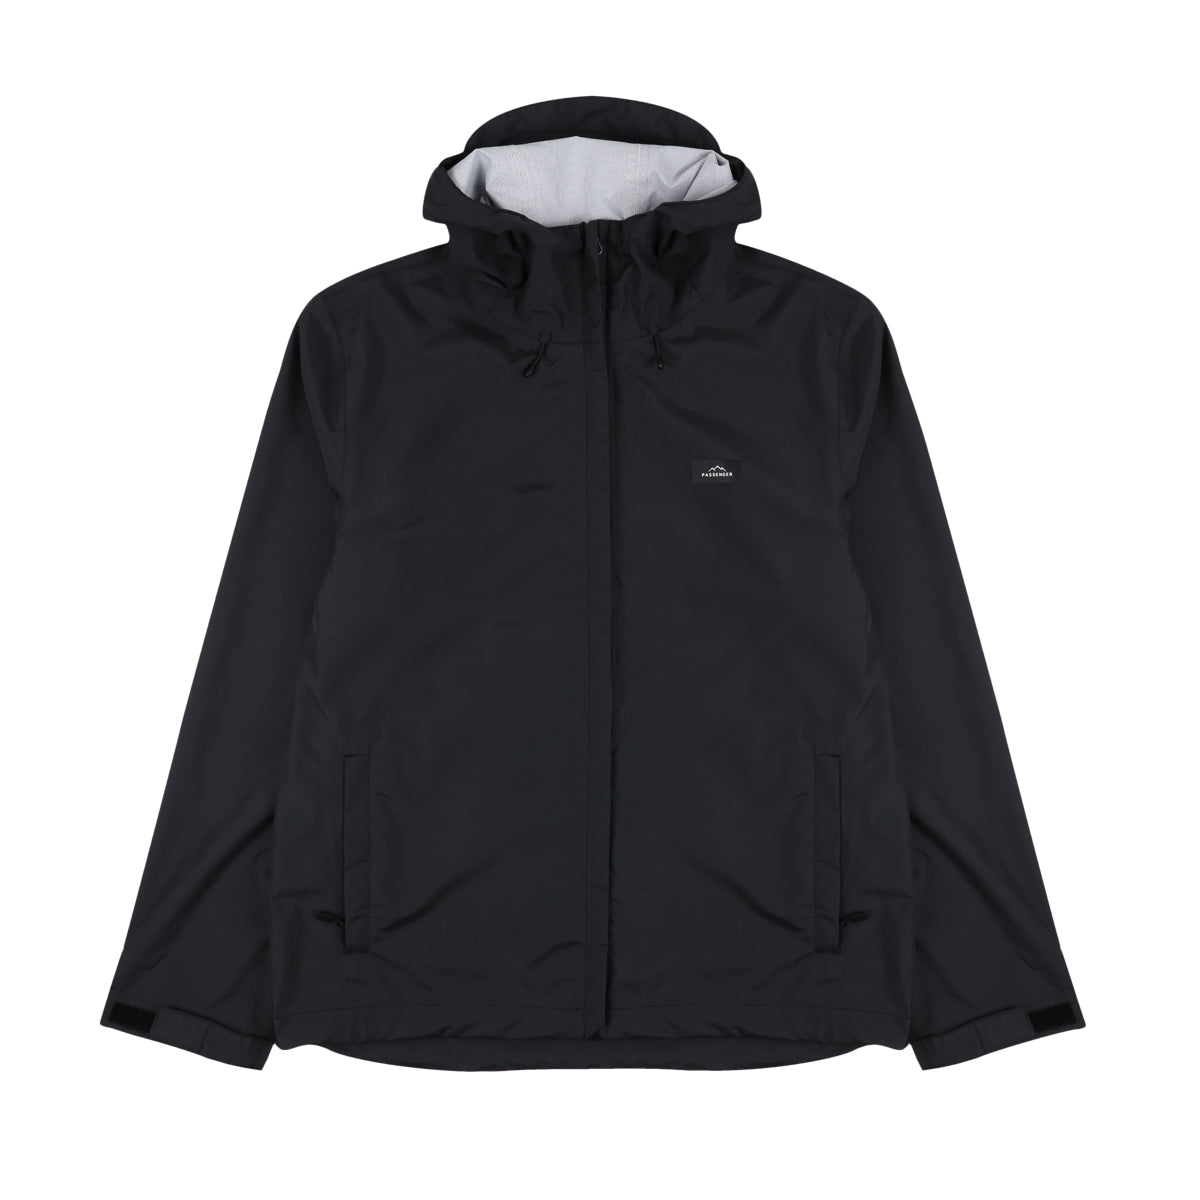 Norcal Waterproof Jacket - Black image 7